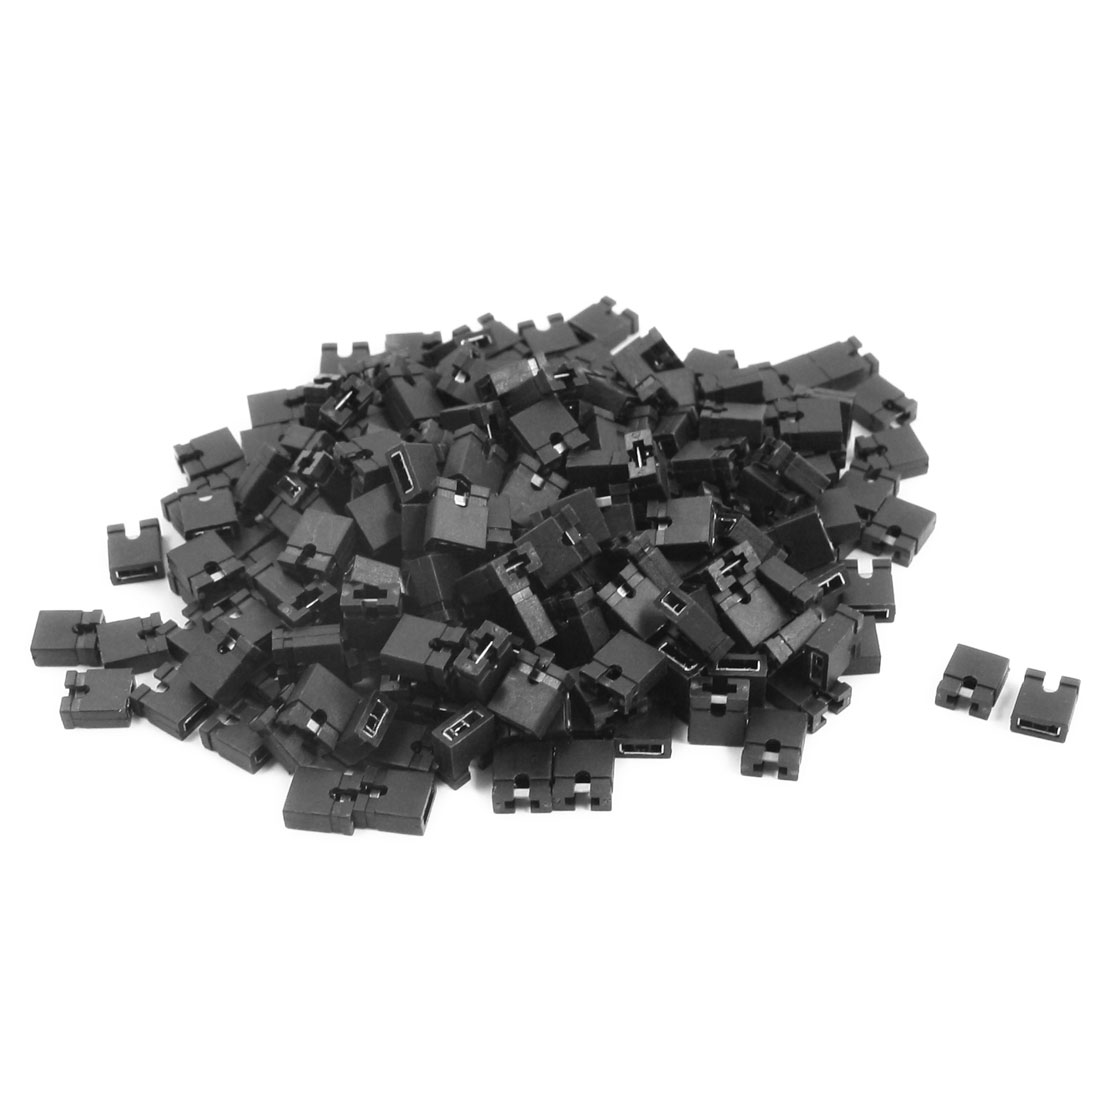 200Pcs IDE CD DVD HDD PC Motherboard PCB Plugs Jumper Caps 2.54mm Black